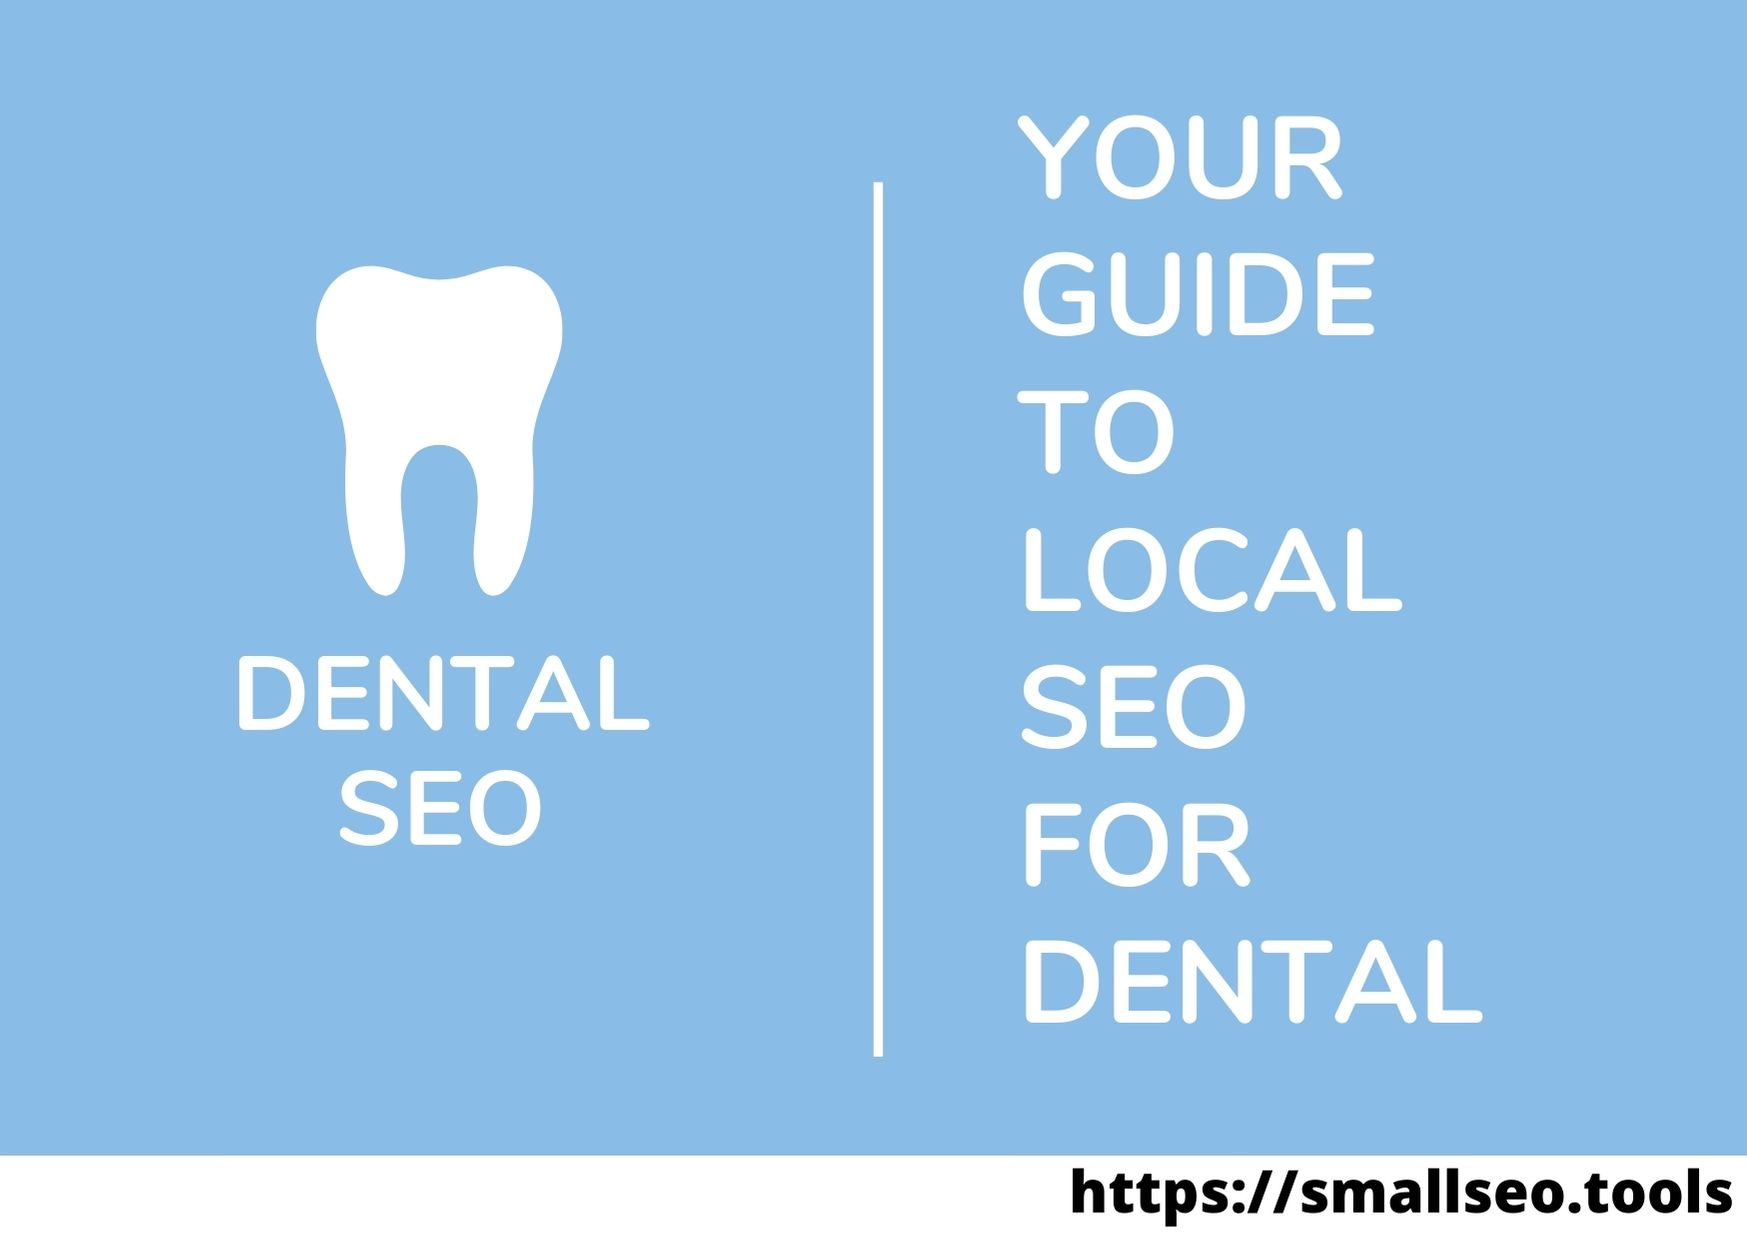 How to do local seo for Dental Clinic?